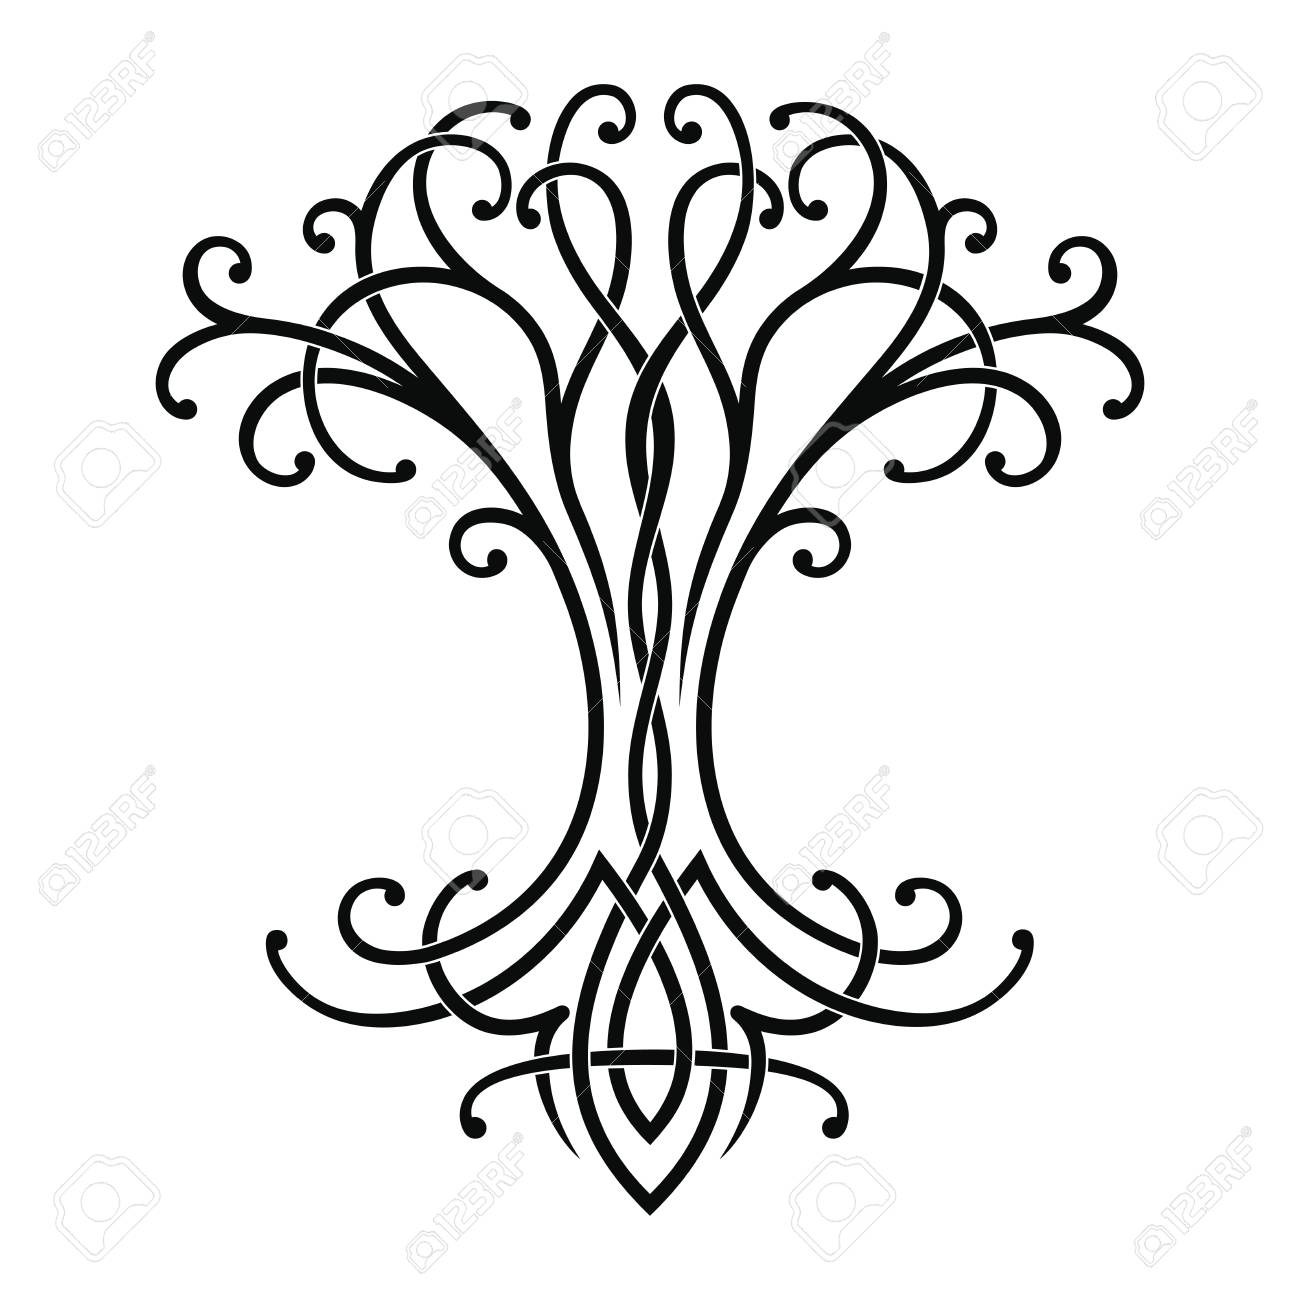 vector celtic national drawing of a tree of life royalty free rh 123rf com tree life vectoriel tree of life vector equilibrium vortex